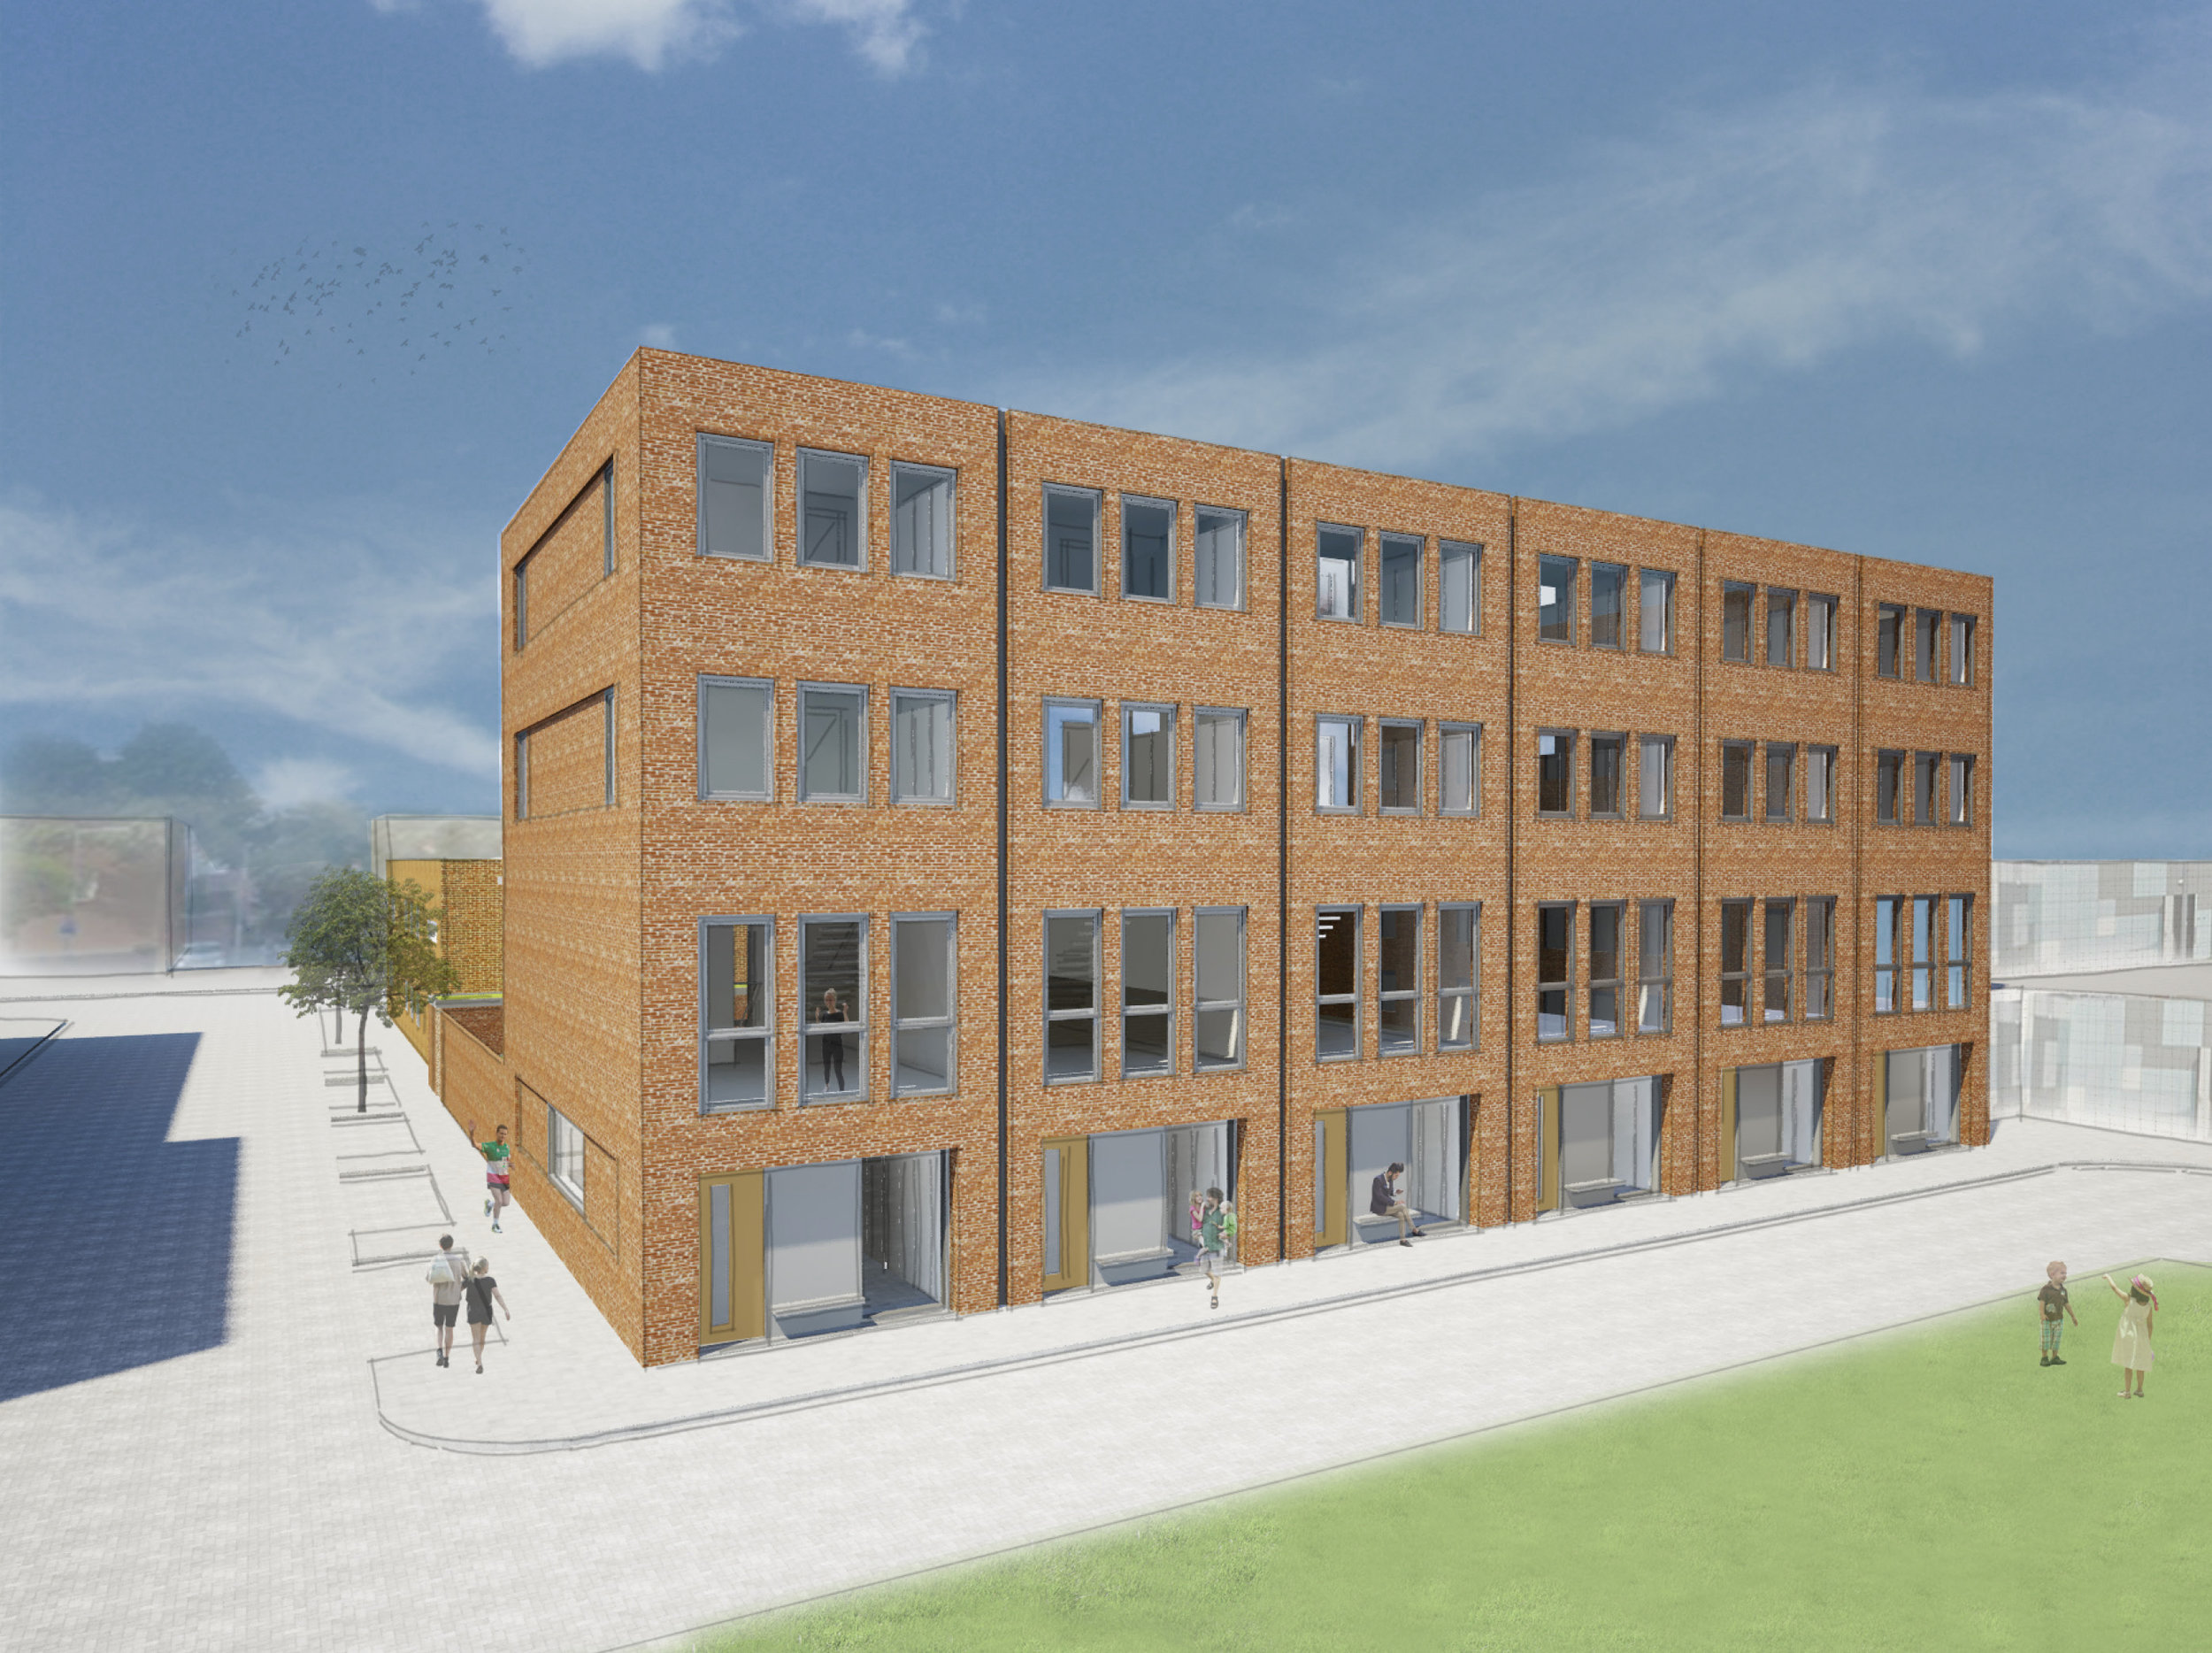 six contemporary city homes   proposal for densification in one of Rotterdam's up and coming neighborhoods